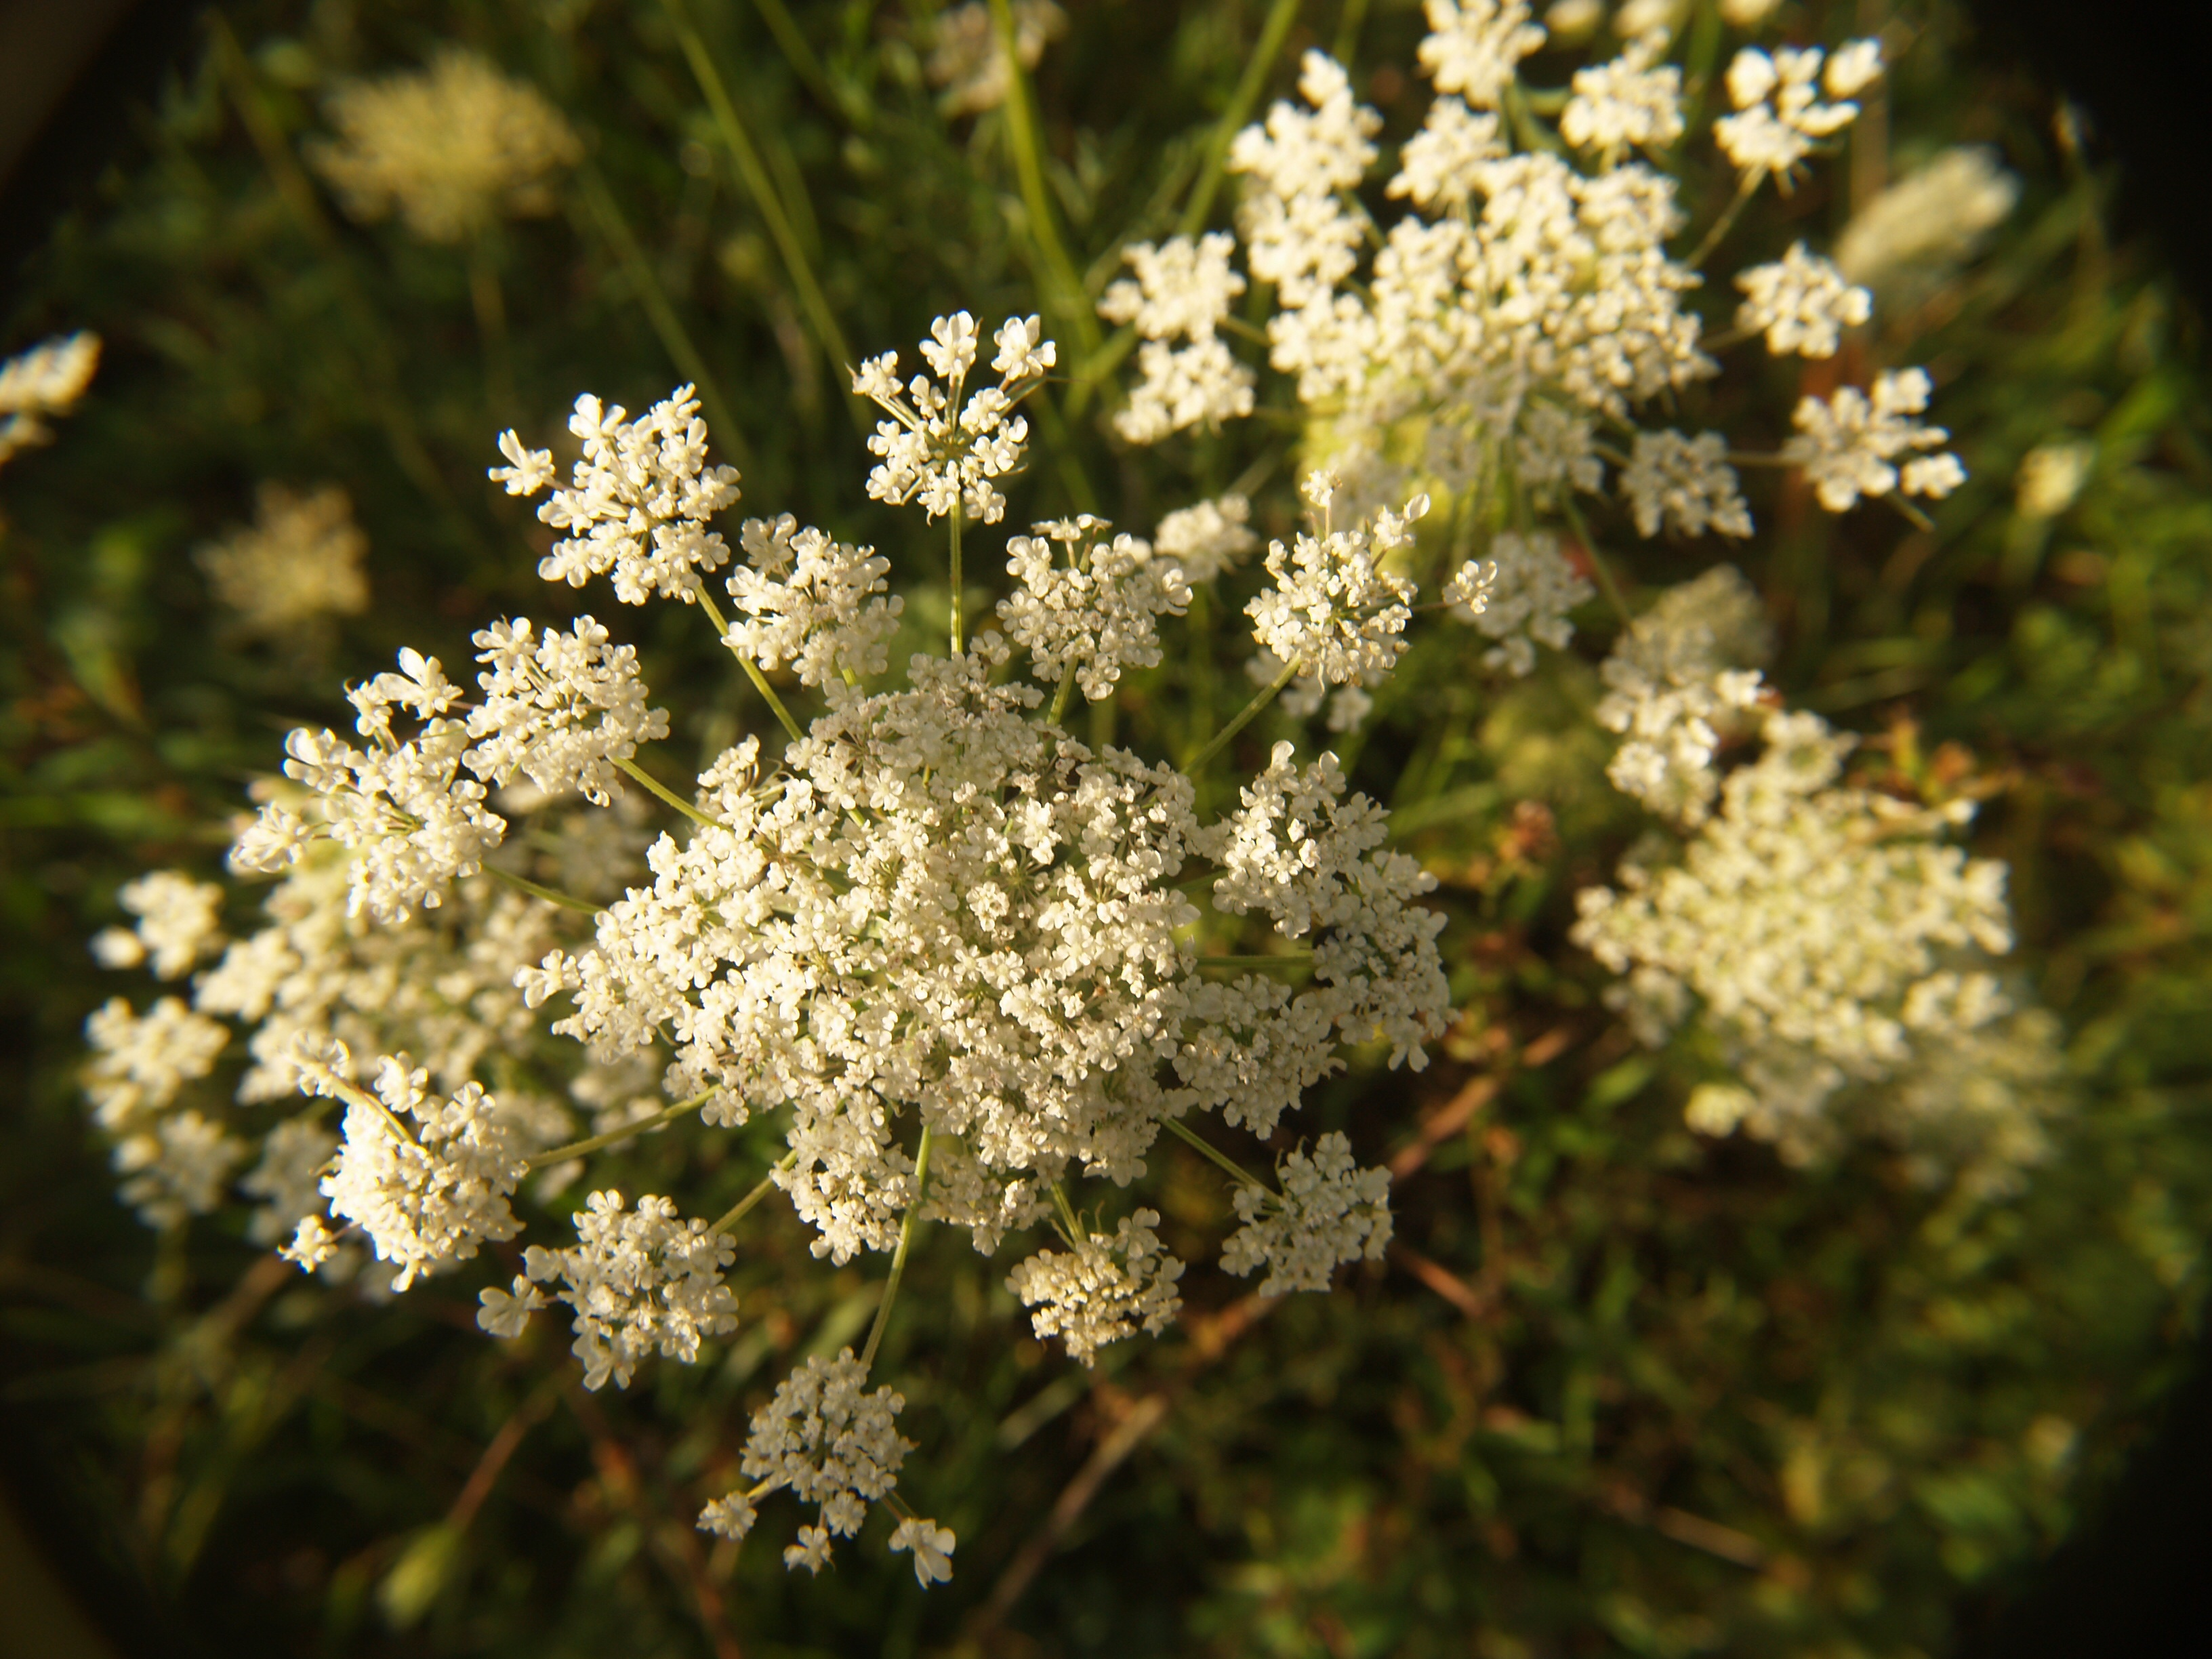 country, Queen Anne's lace , edible foods, remembrance, Anzac Day, Anzac in Australia